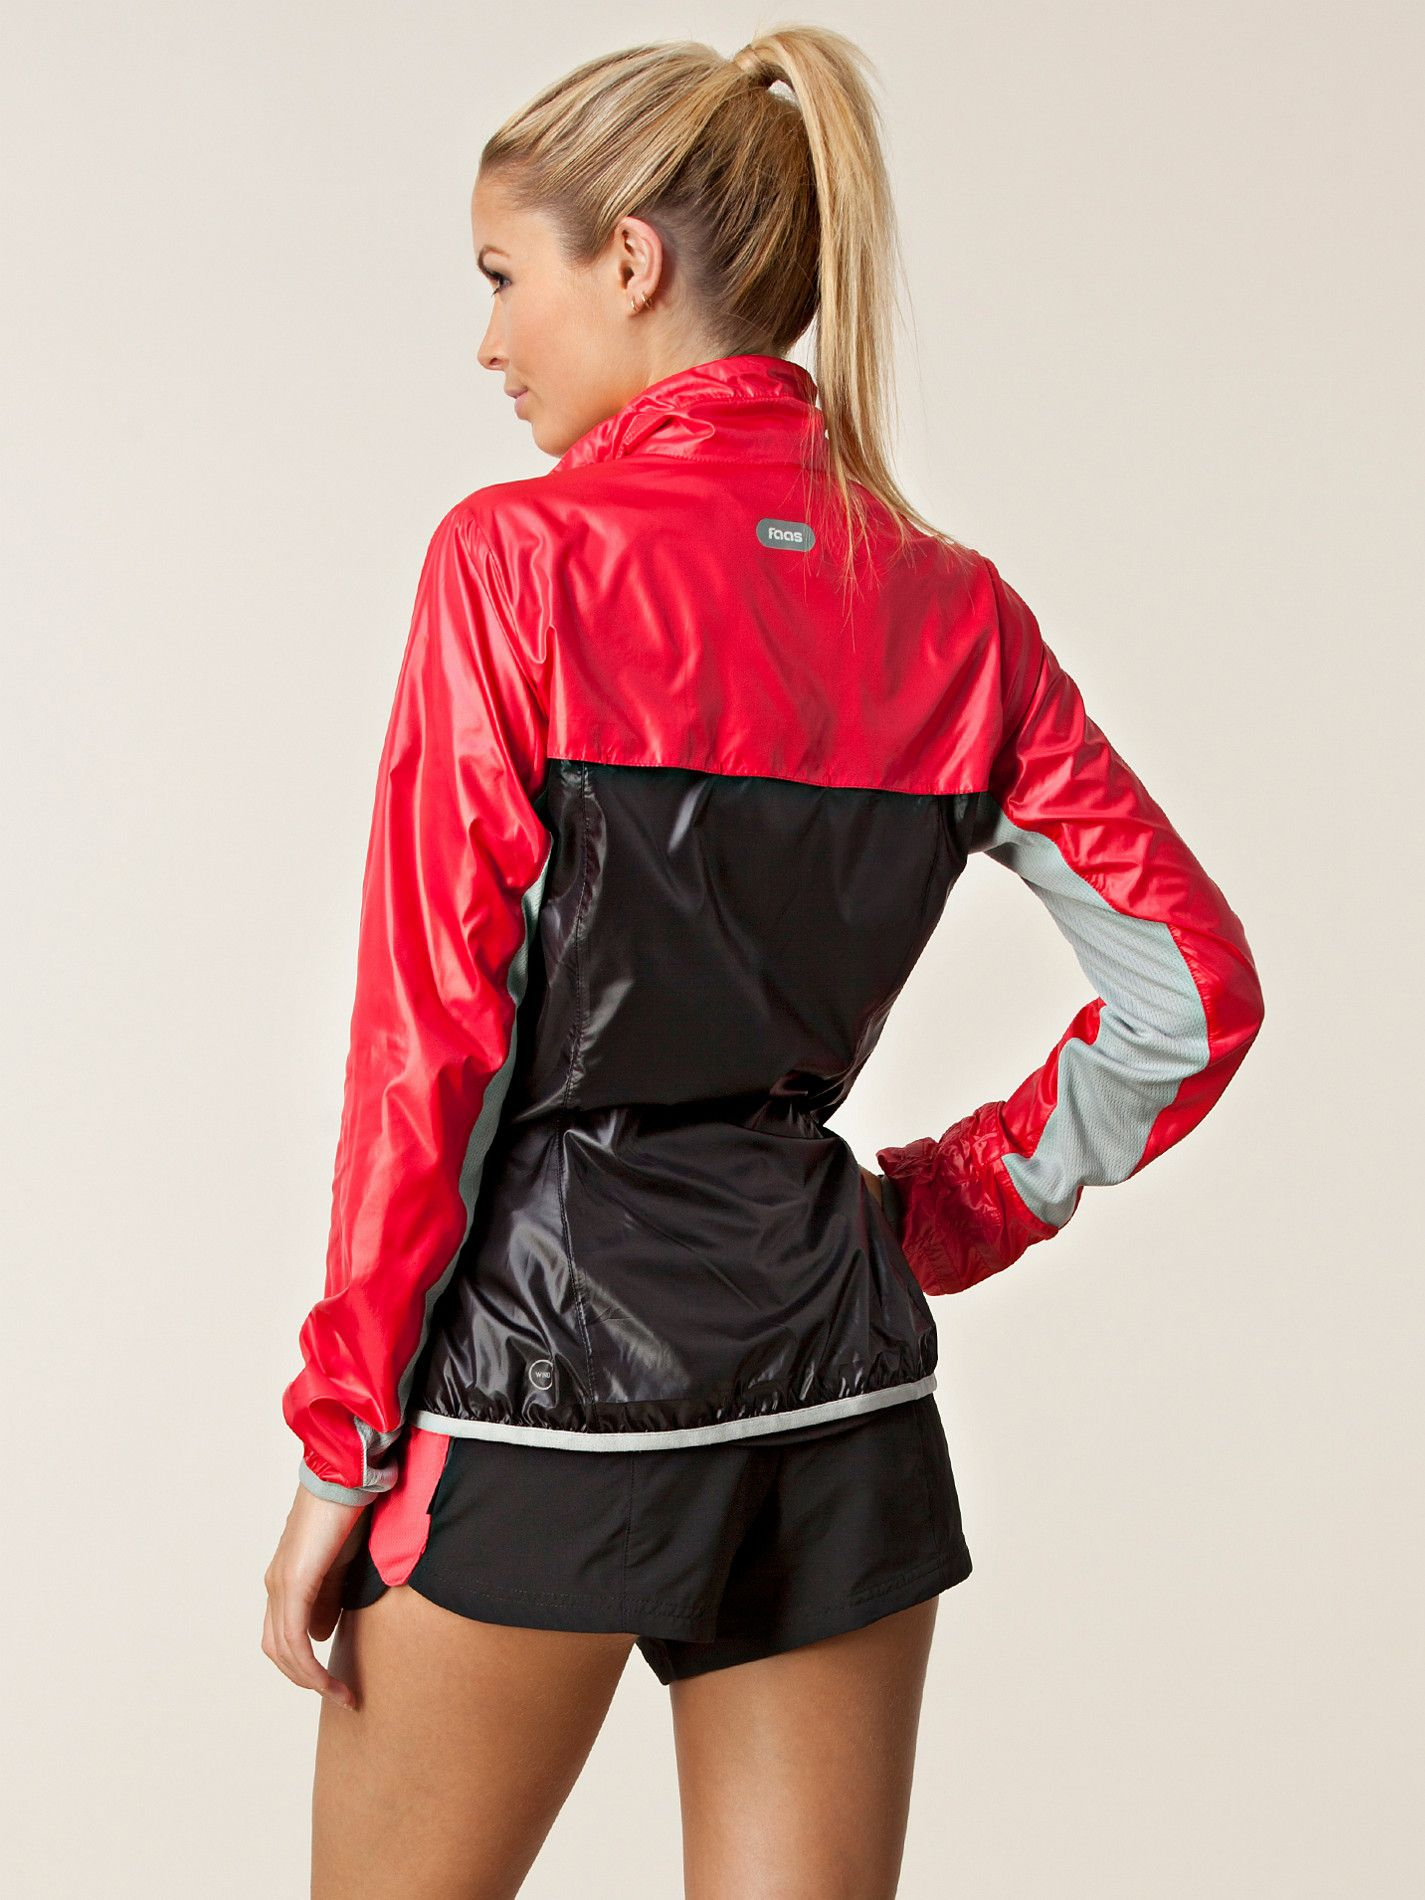 Faas Wind Jacket W - Puma - Red - Jackets And Coats - Sports ...